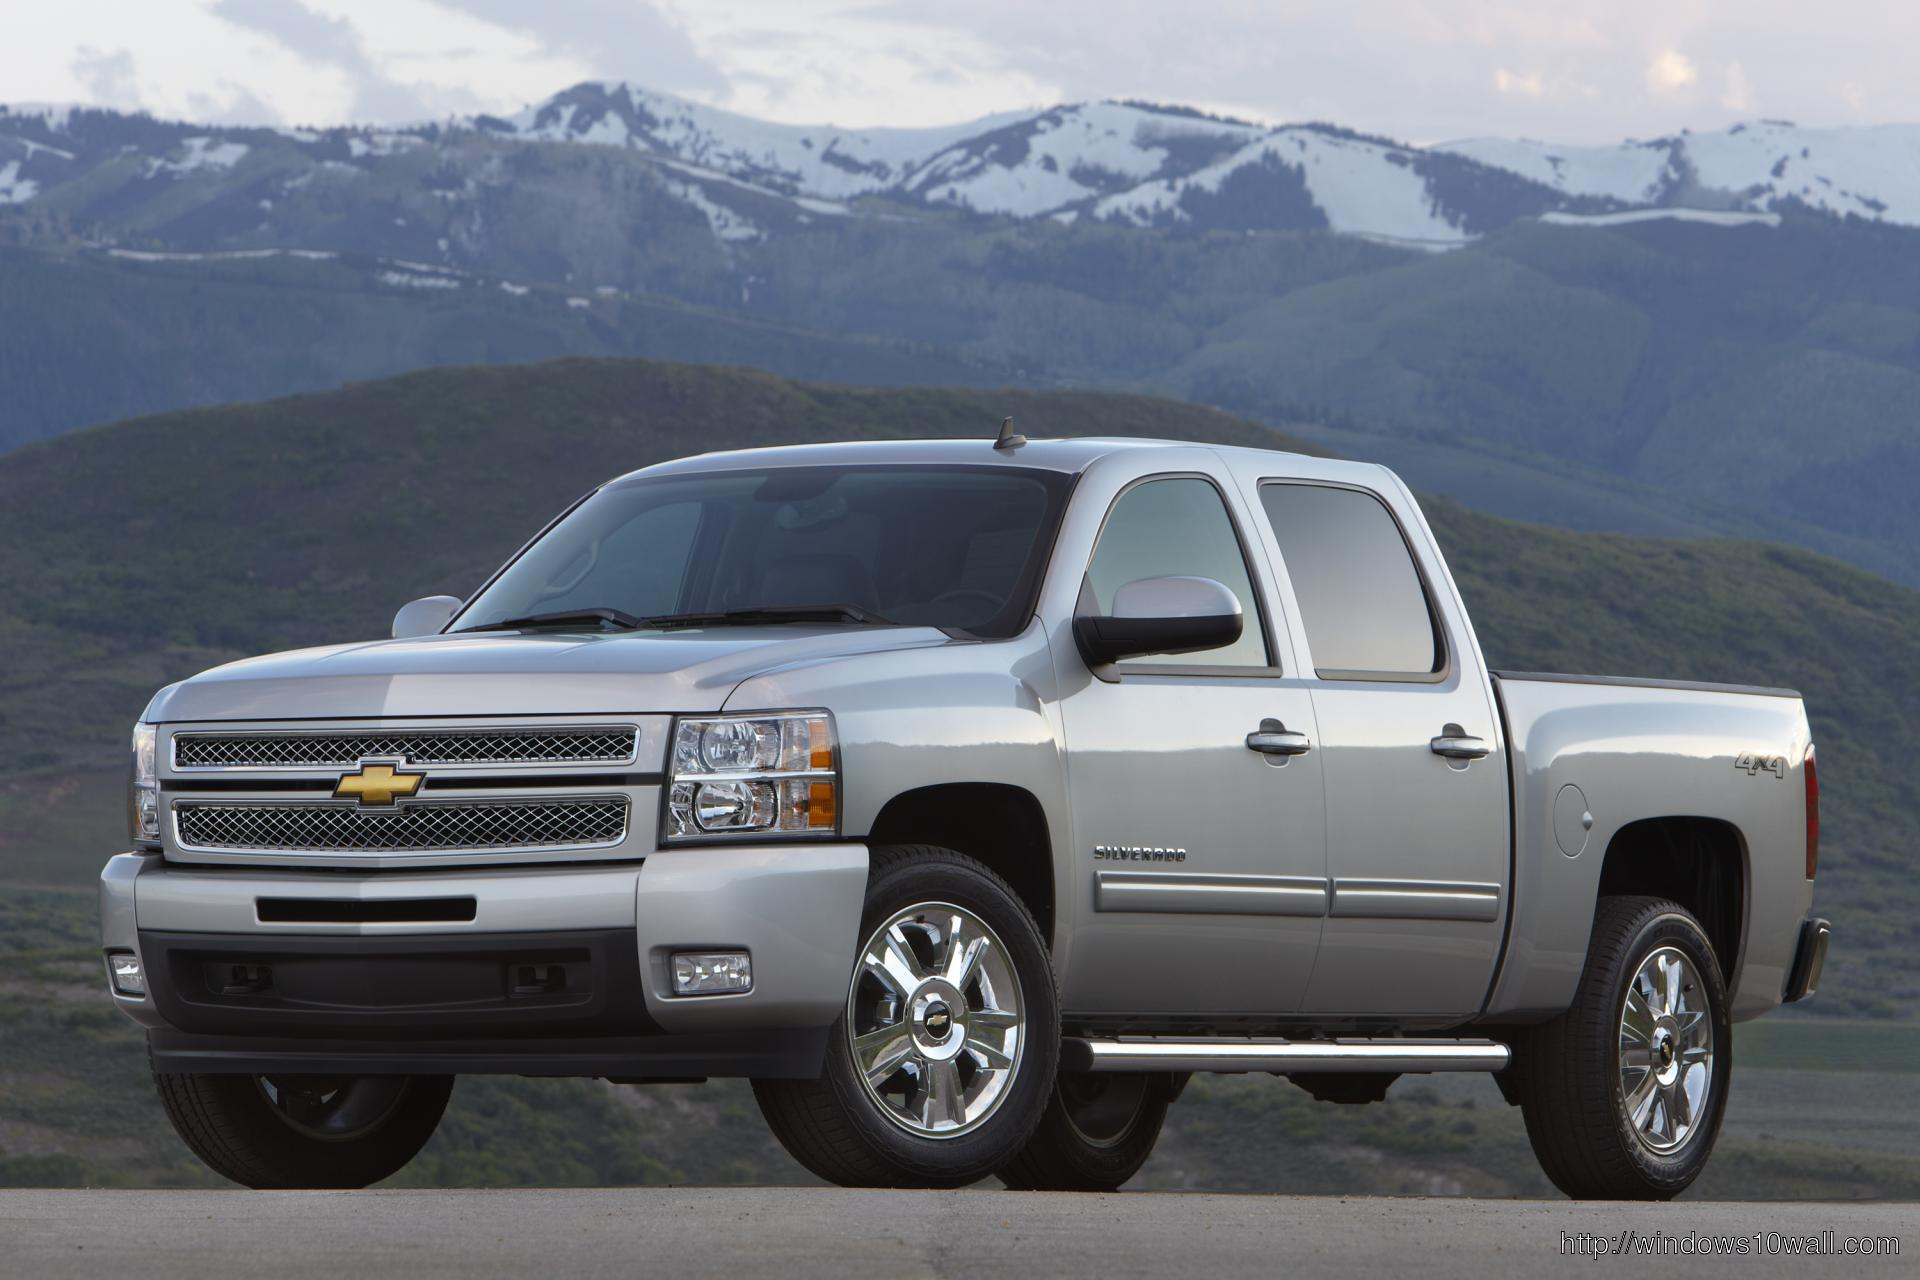 2013 Chevrolet Silverado Wallpaper